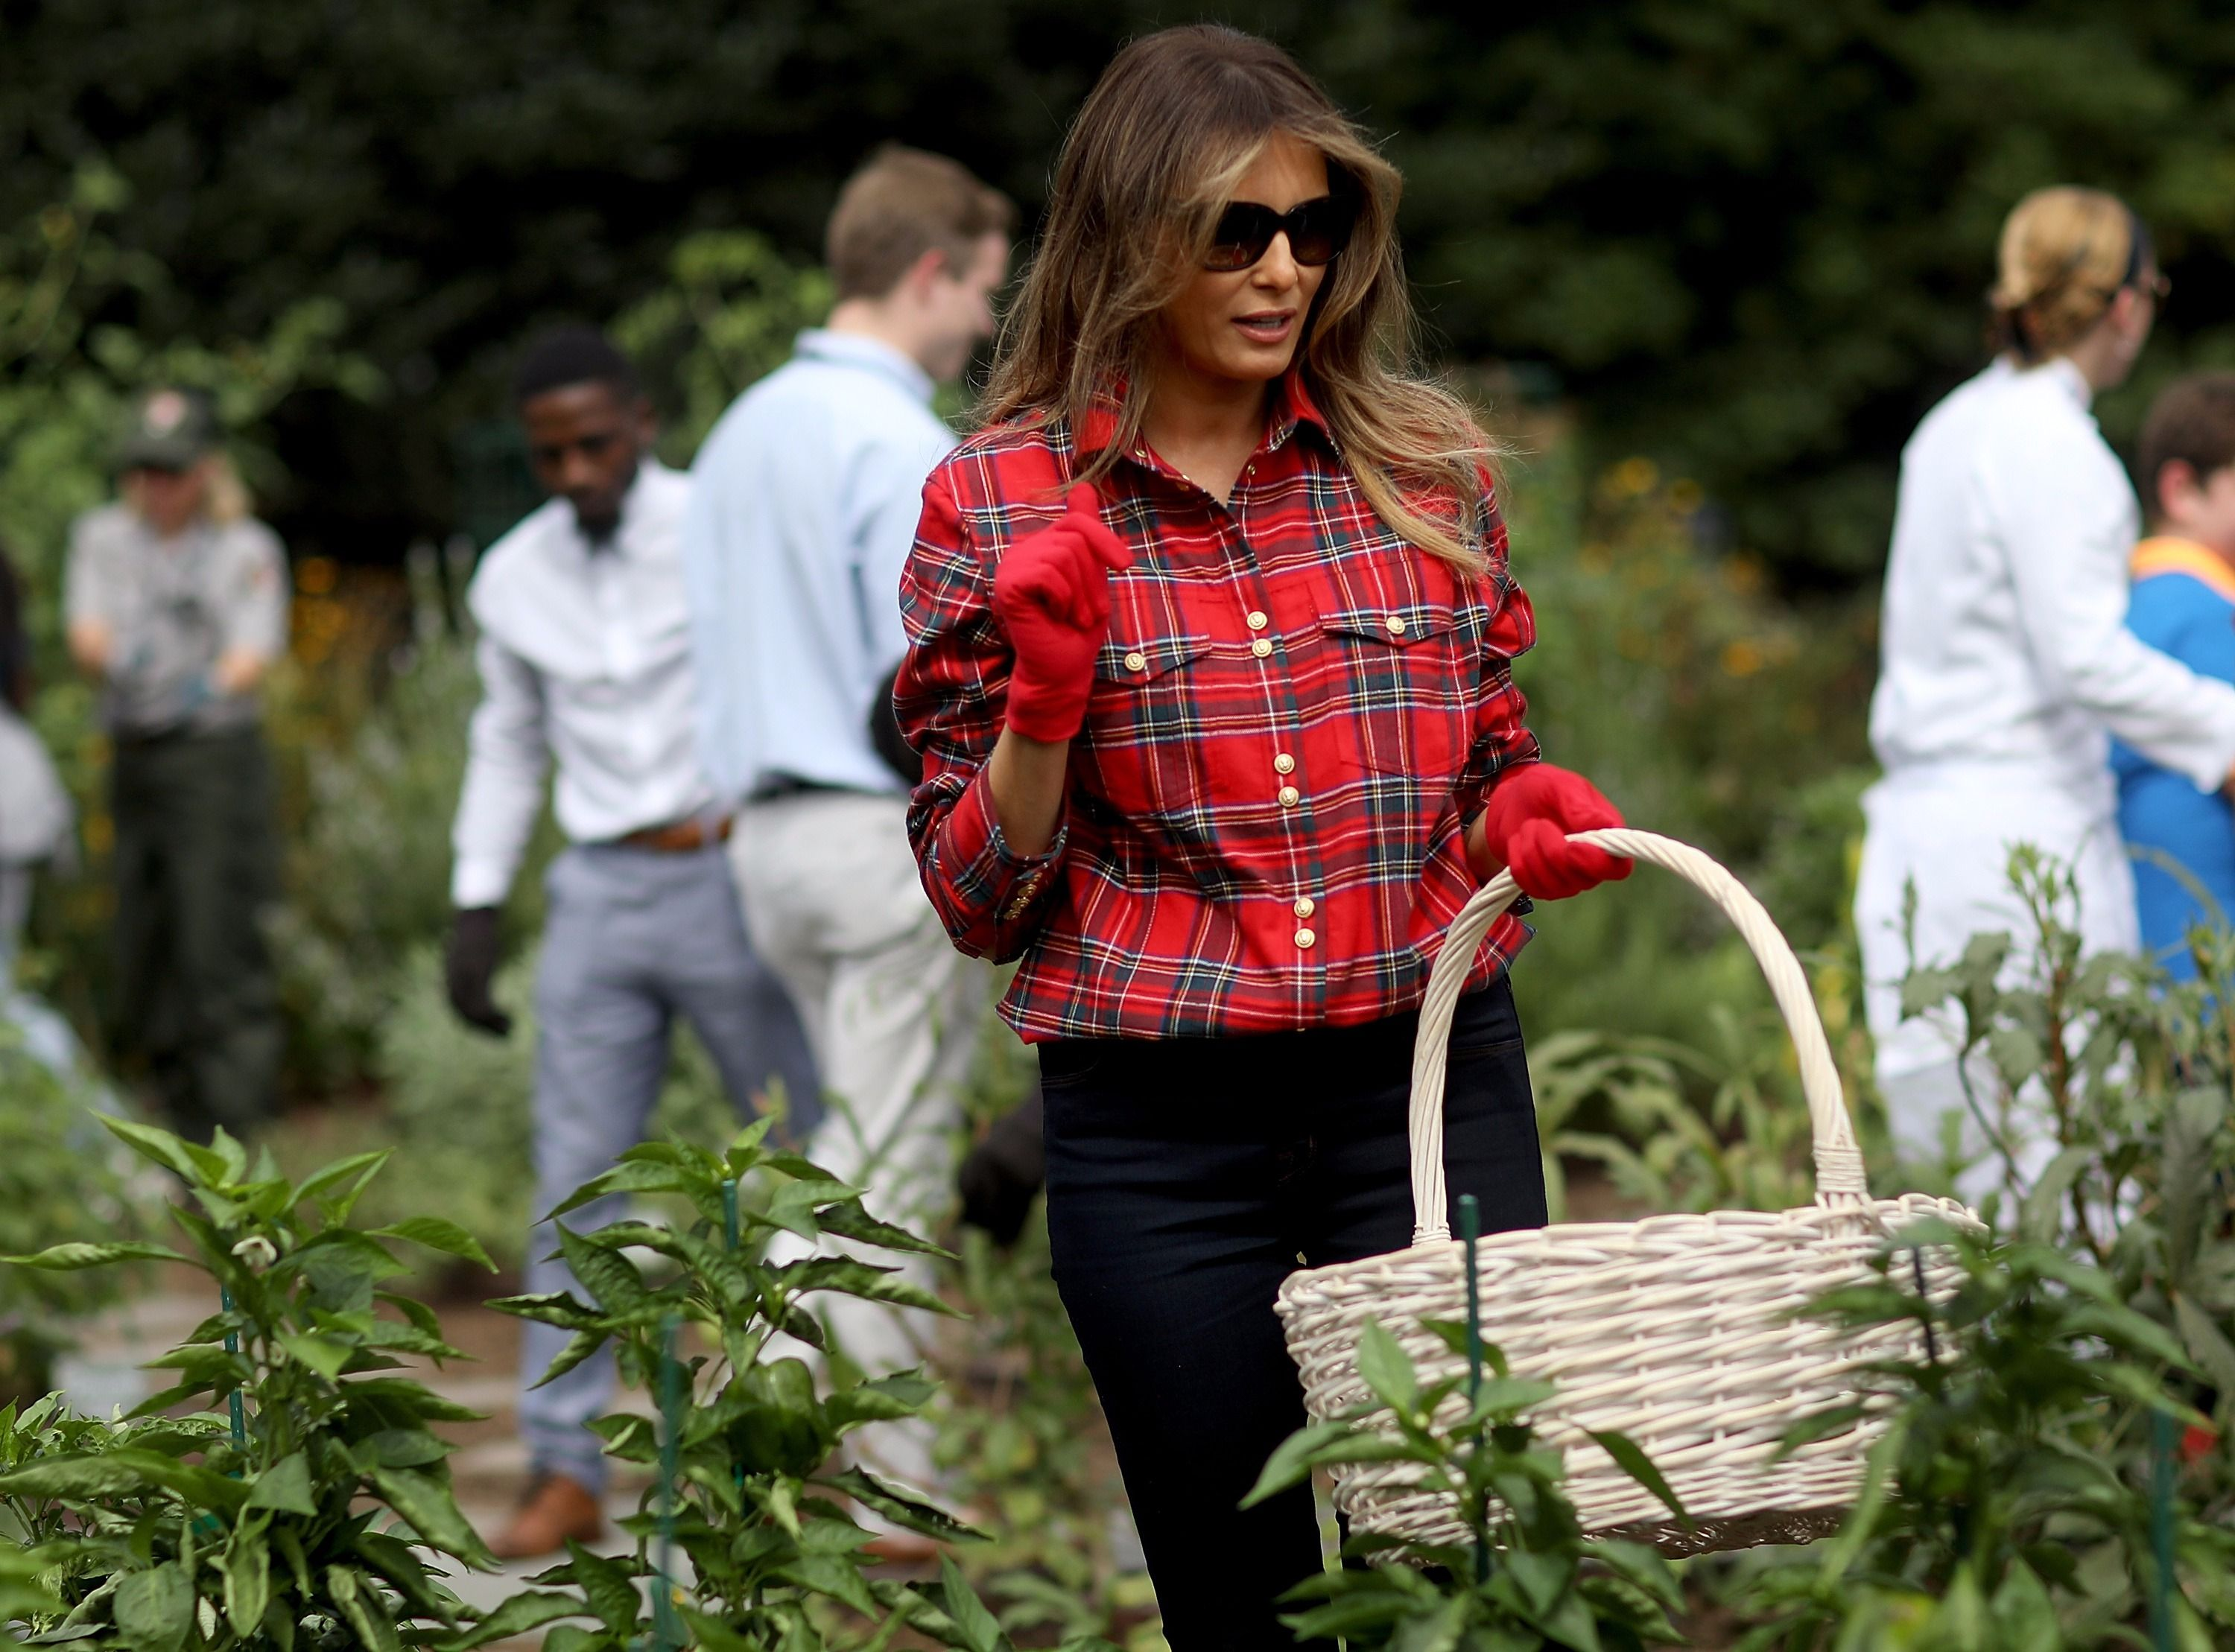 School librarian rejects book donation from Melania Trump